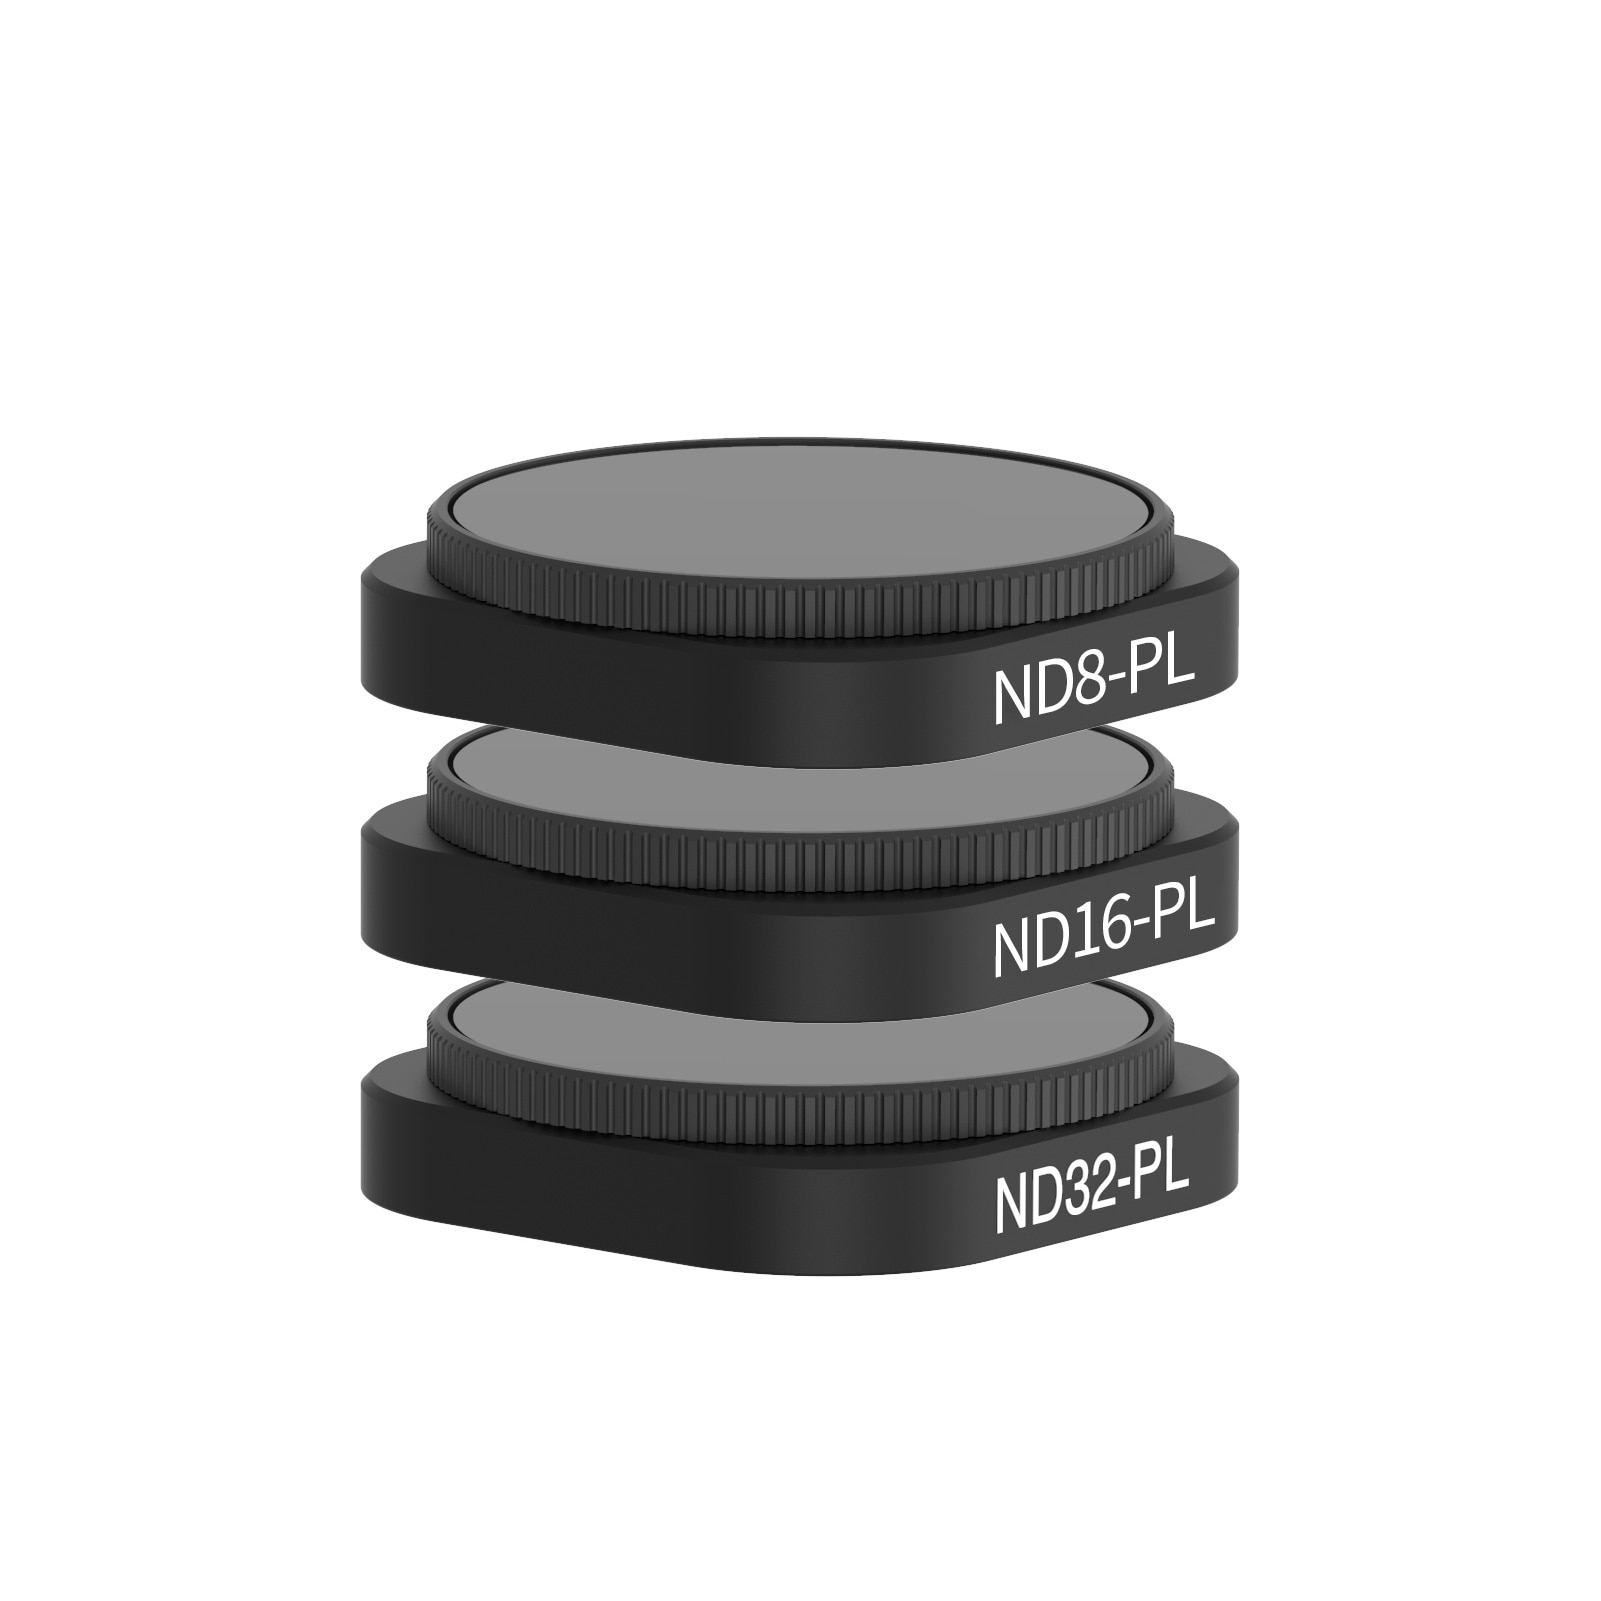 telesin-3-in-1-nd8-16-32-pl-filter-lens-replacement-for-gopro-hero-9-black-action-camera-photography-accessories-photo-studio